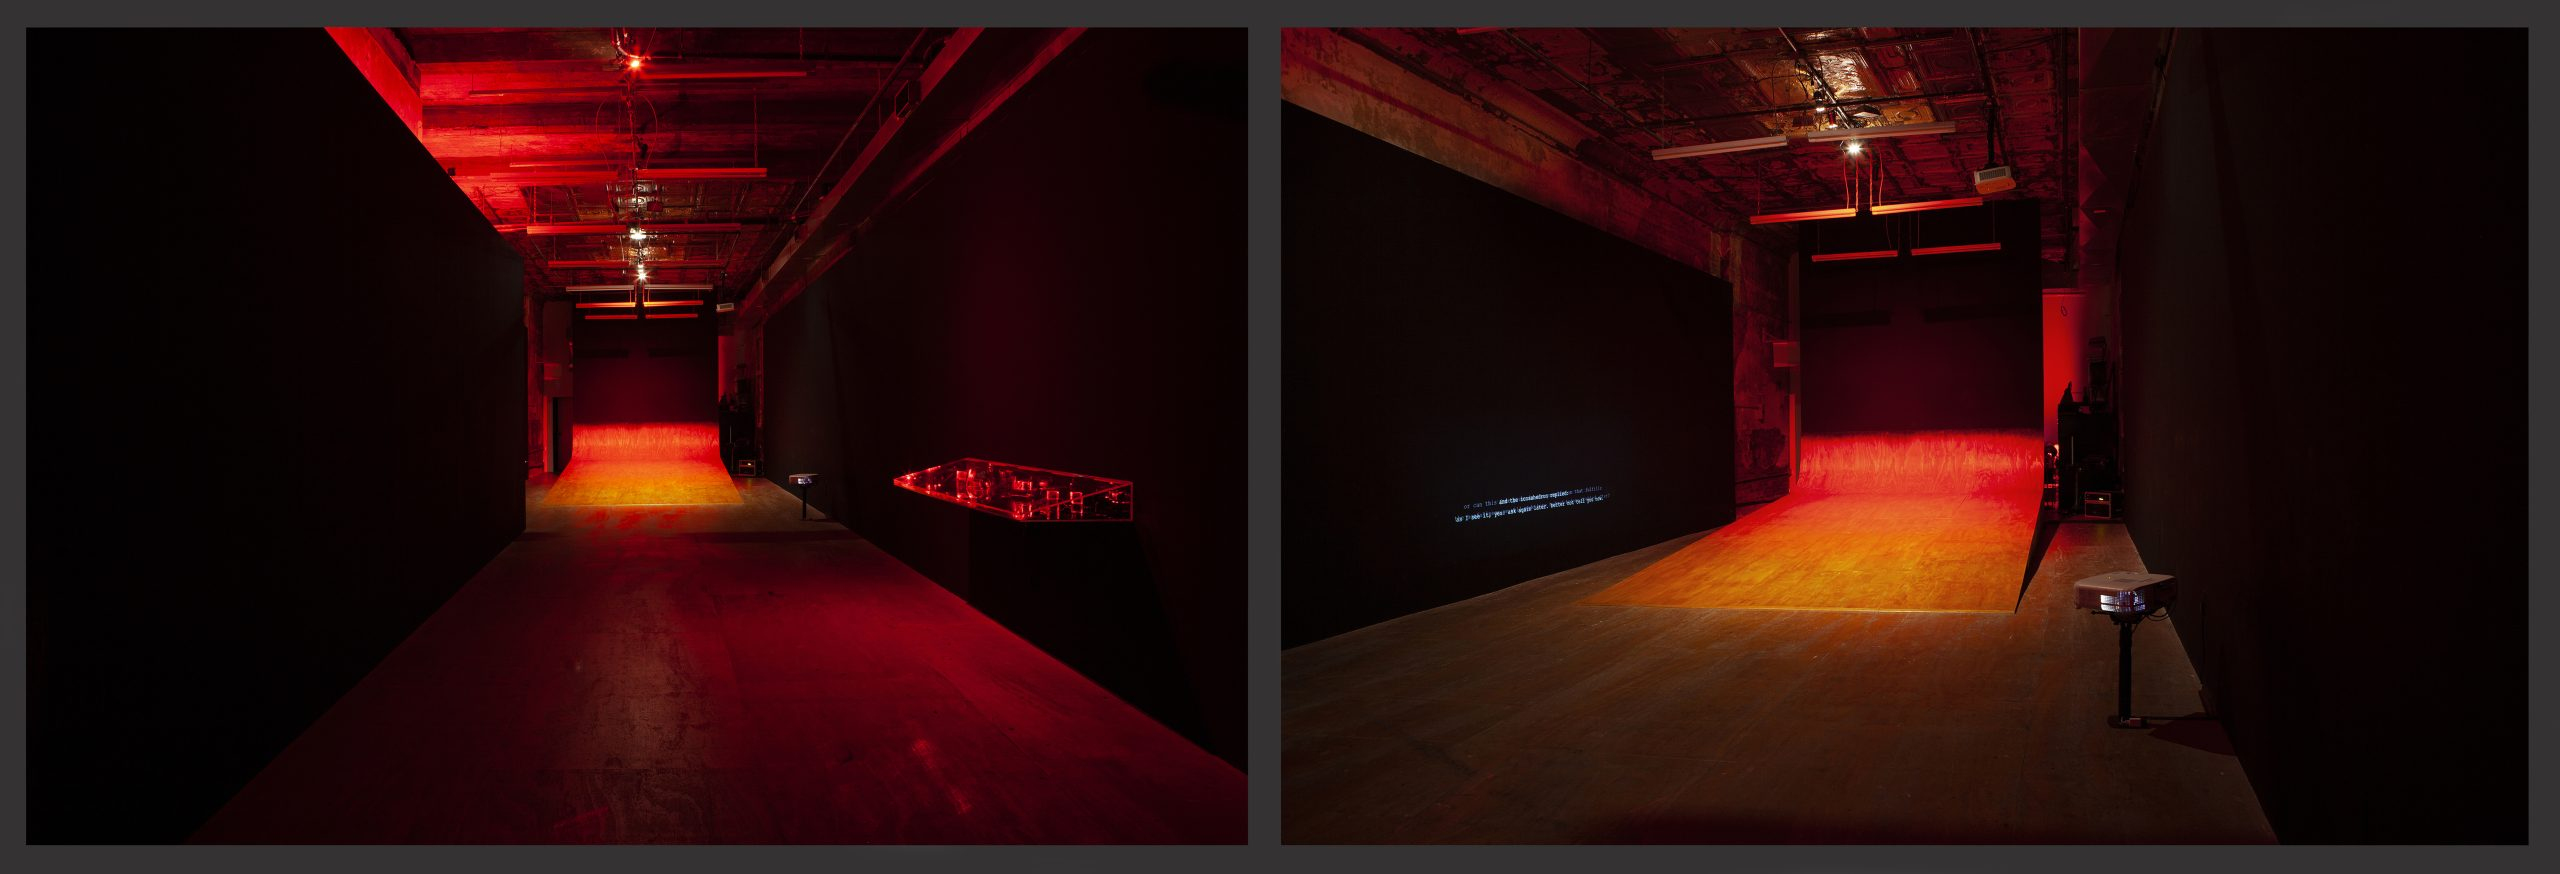 Views of a dark gallery space, filled with red light, host a large wooden ramp curling up the back wall. On the right is a mounted clear case glowing with red lasers; overlapping white and grey text is projected on the left wall.